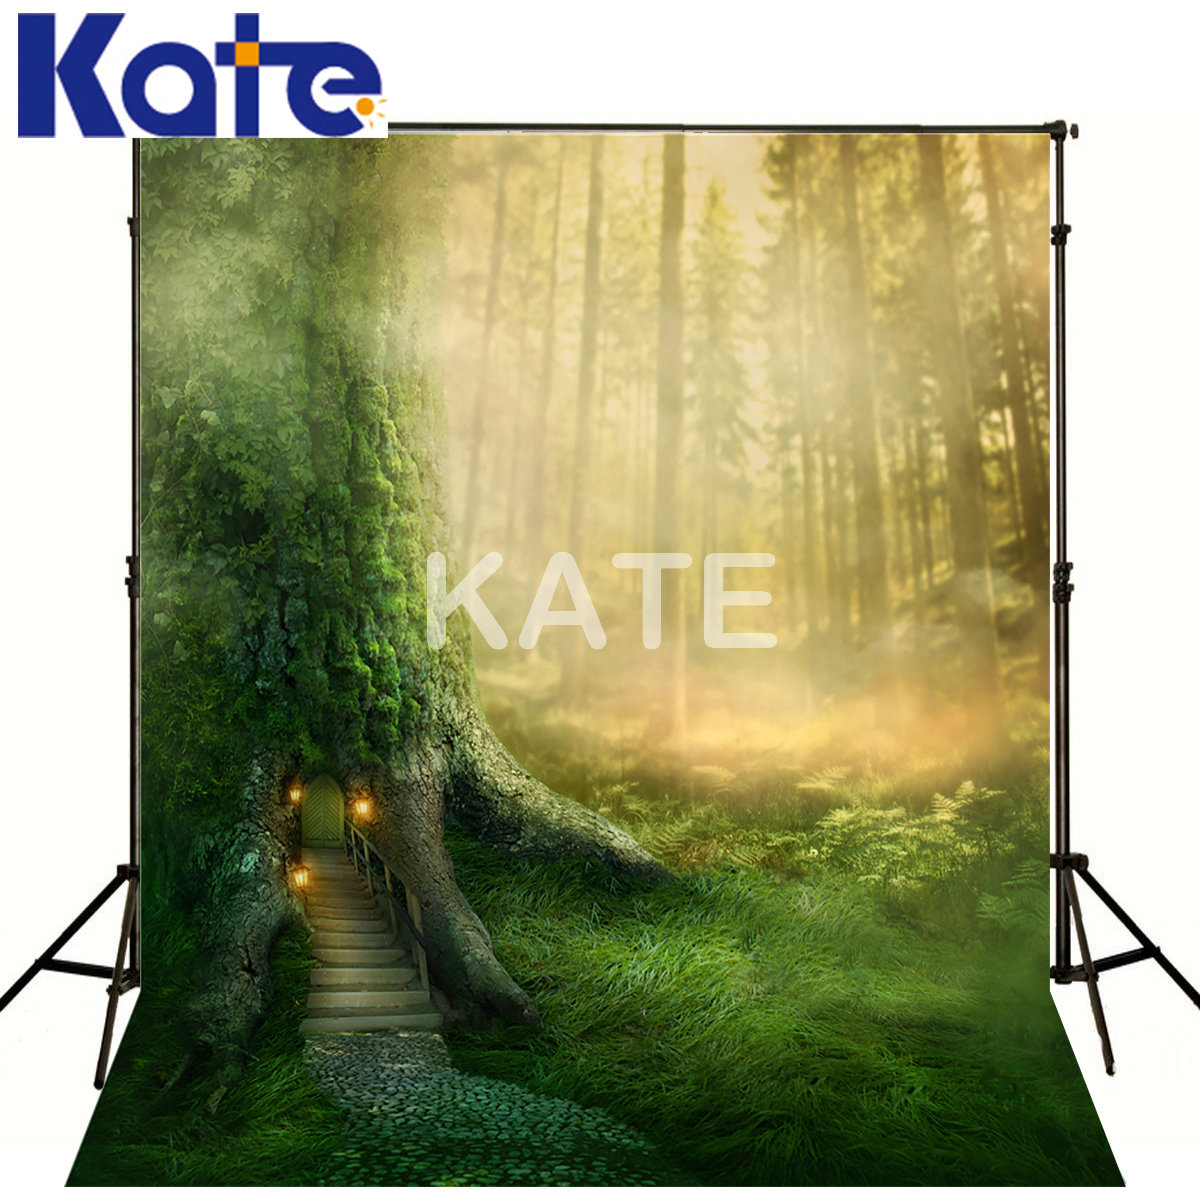 150*200CM(5*6.5FT)Kate Photography Backdrops Green Screen Natural Tree House Kate Background Backdrop kate background natural scenery